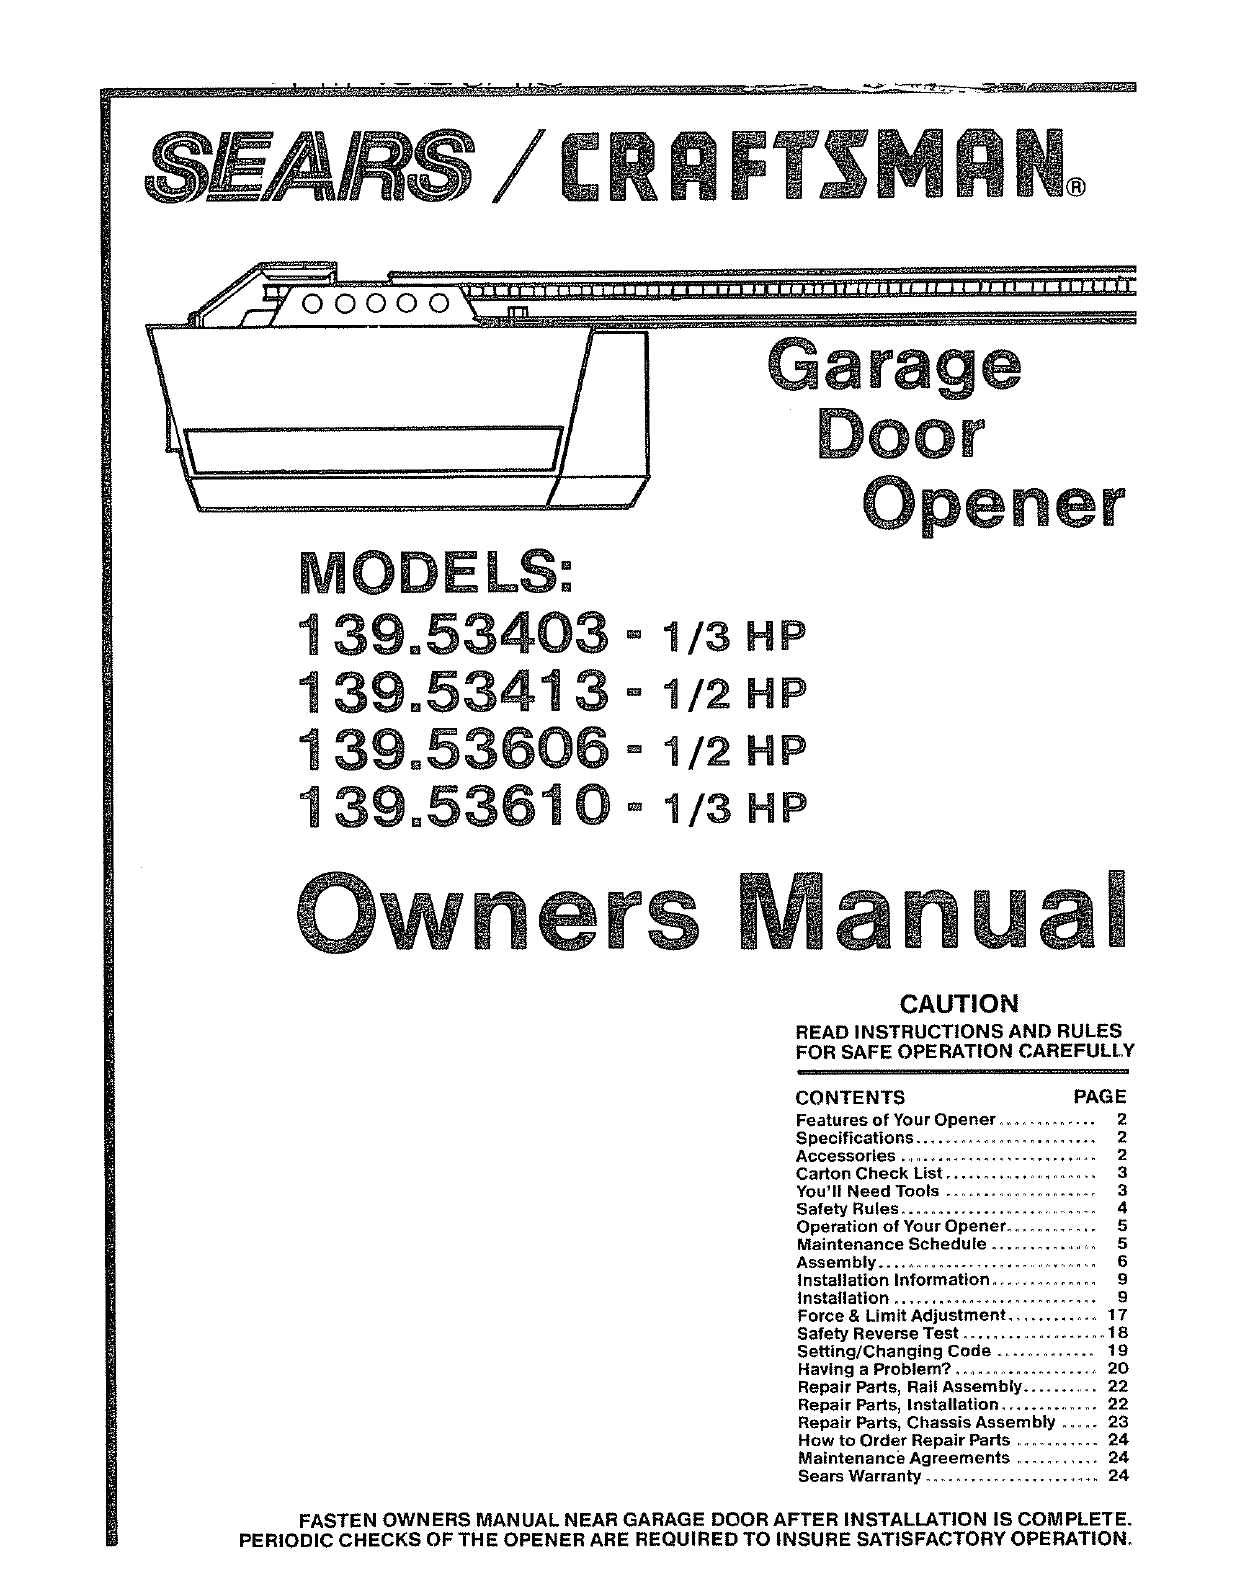 aeee craftsman manuals mfg door user com doors parts manualsonline garage opener guide